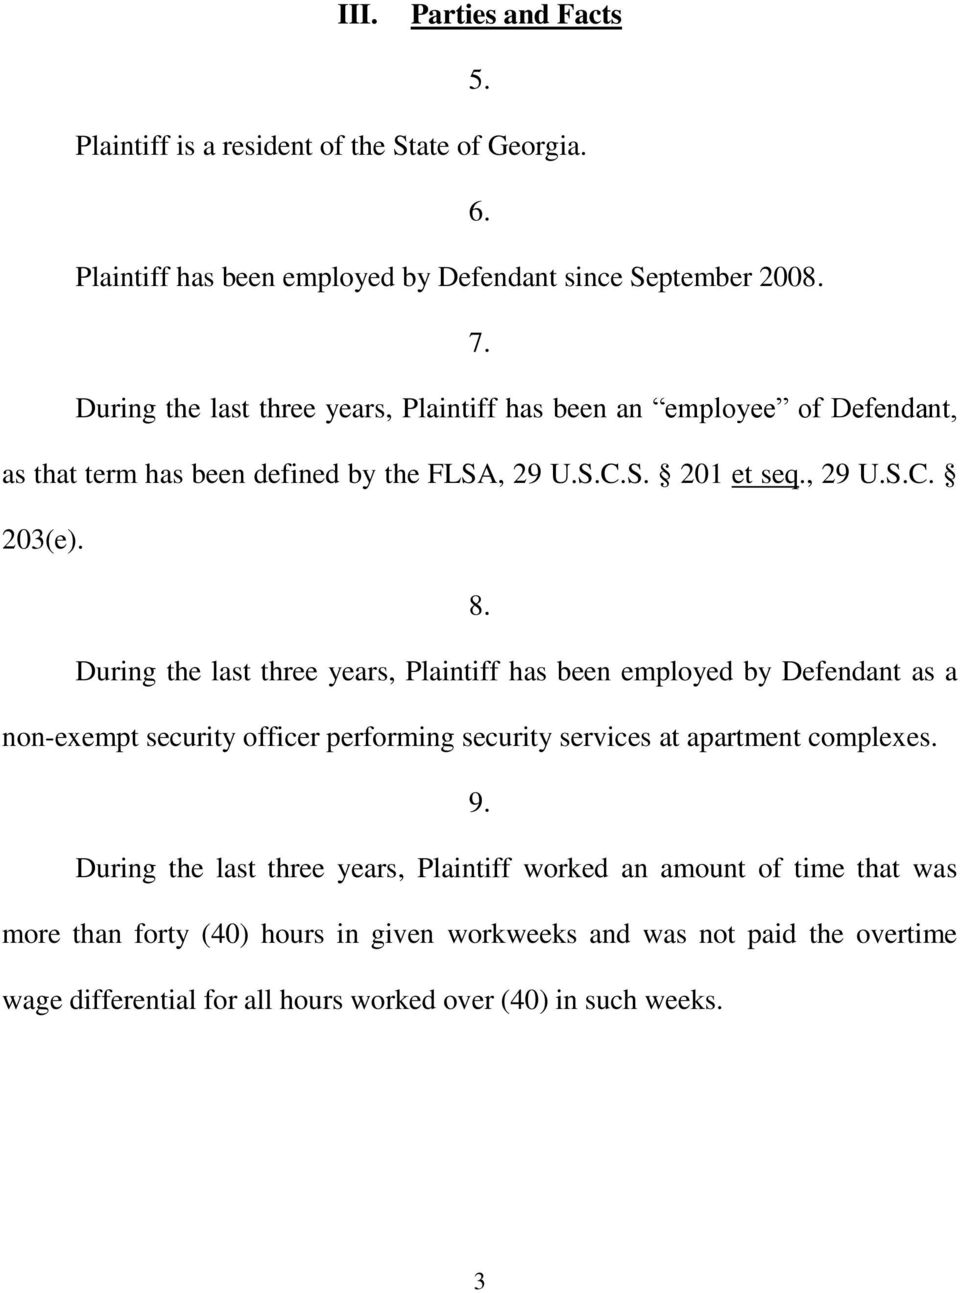 During the last three years, Plaintiff has been employed by Defendant as a non-exempt security officer performing security services at apartment complexes. 9.